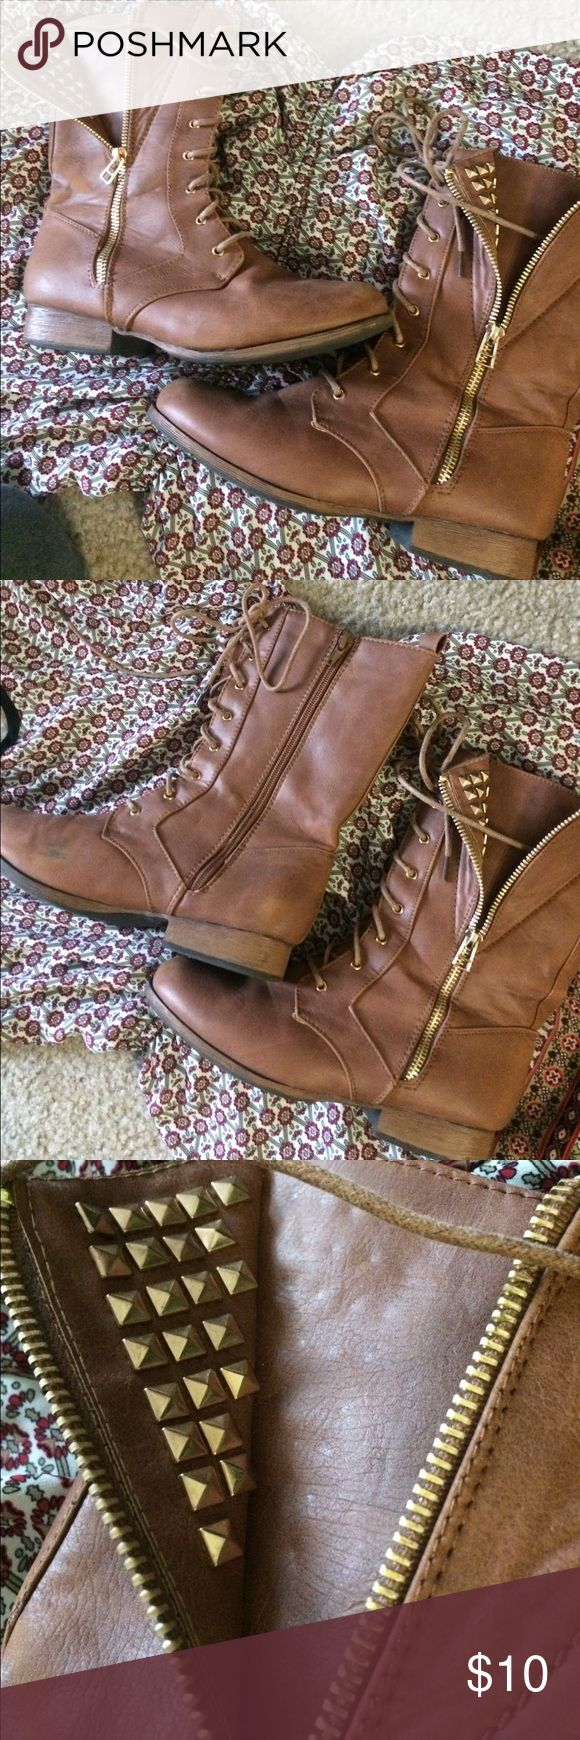 Brown combat boots w/ stud accent Brown zip up combat boots with stud accent. Gently worn, a few scuffs (pics included) Charlotte Russe Shoes Combat & Moto Boots